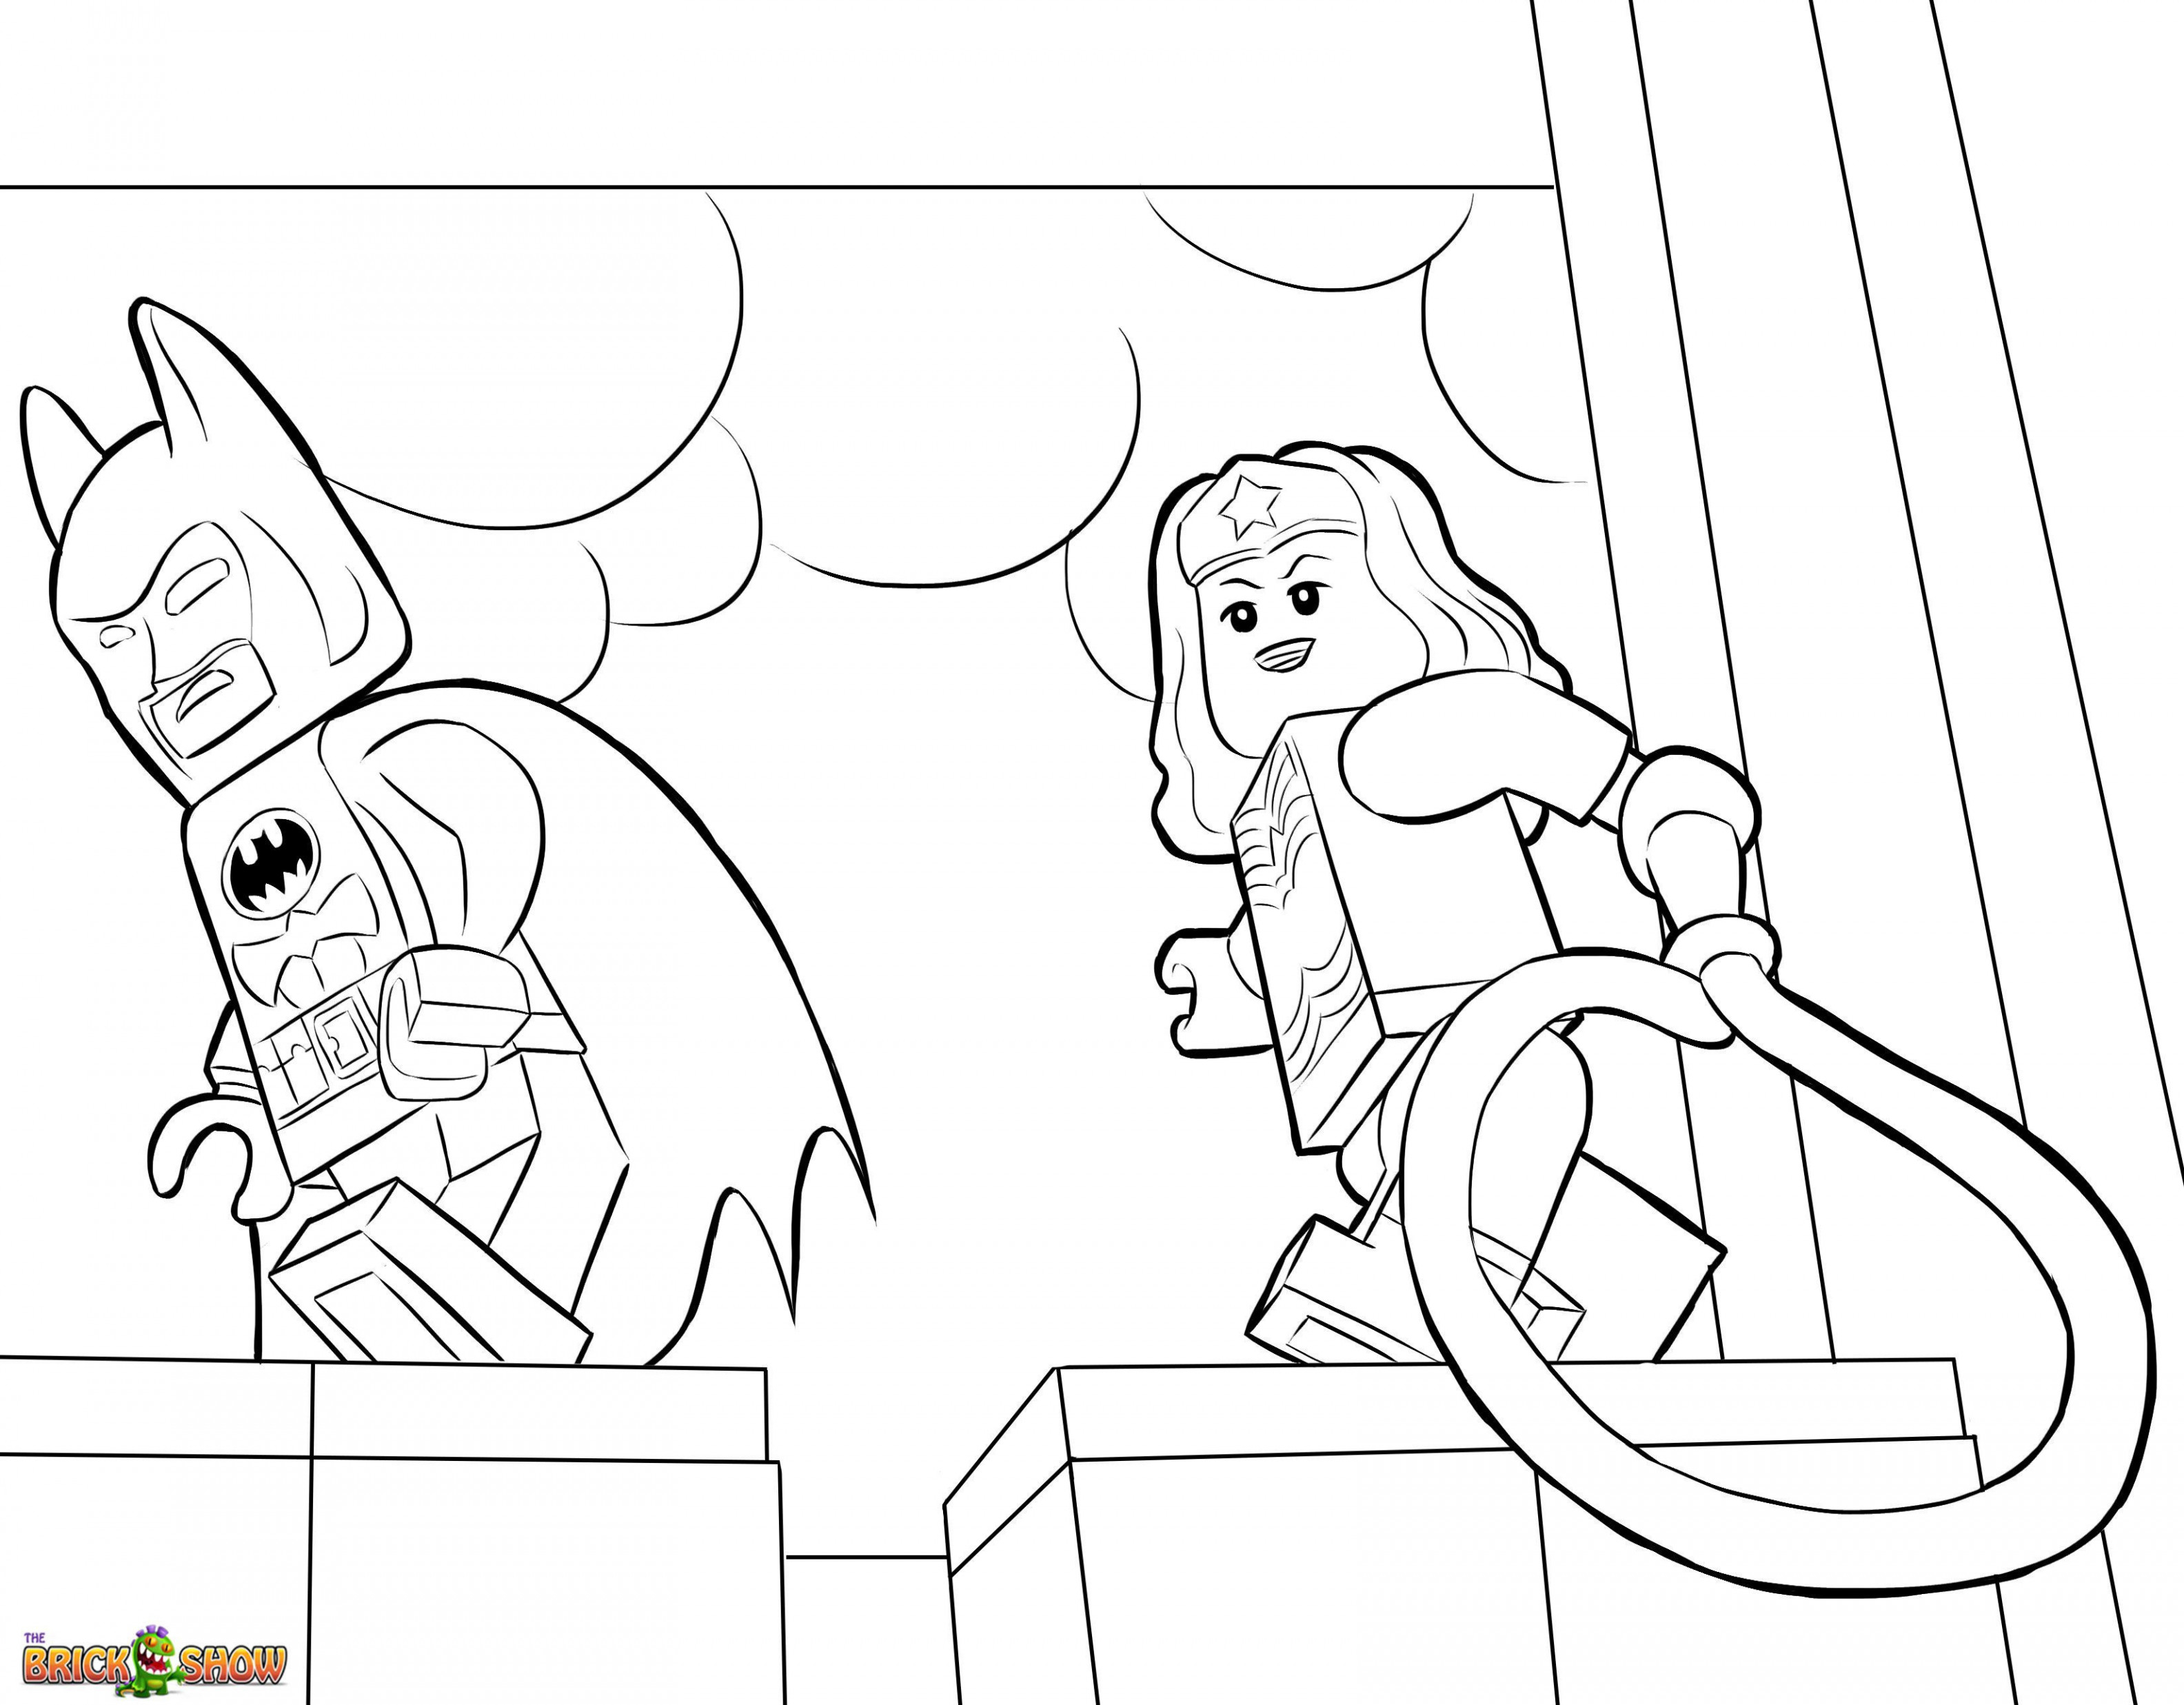 Catwoman Coloring Pages Catwoman Coloring Pages Lego Dc Coloring Pages Nice Lego Coloring